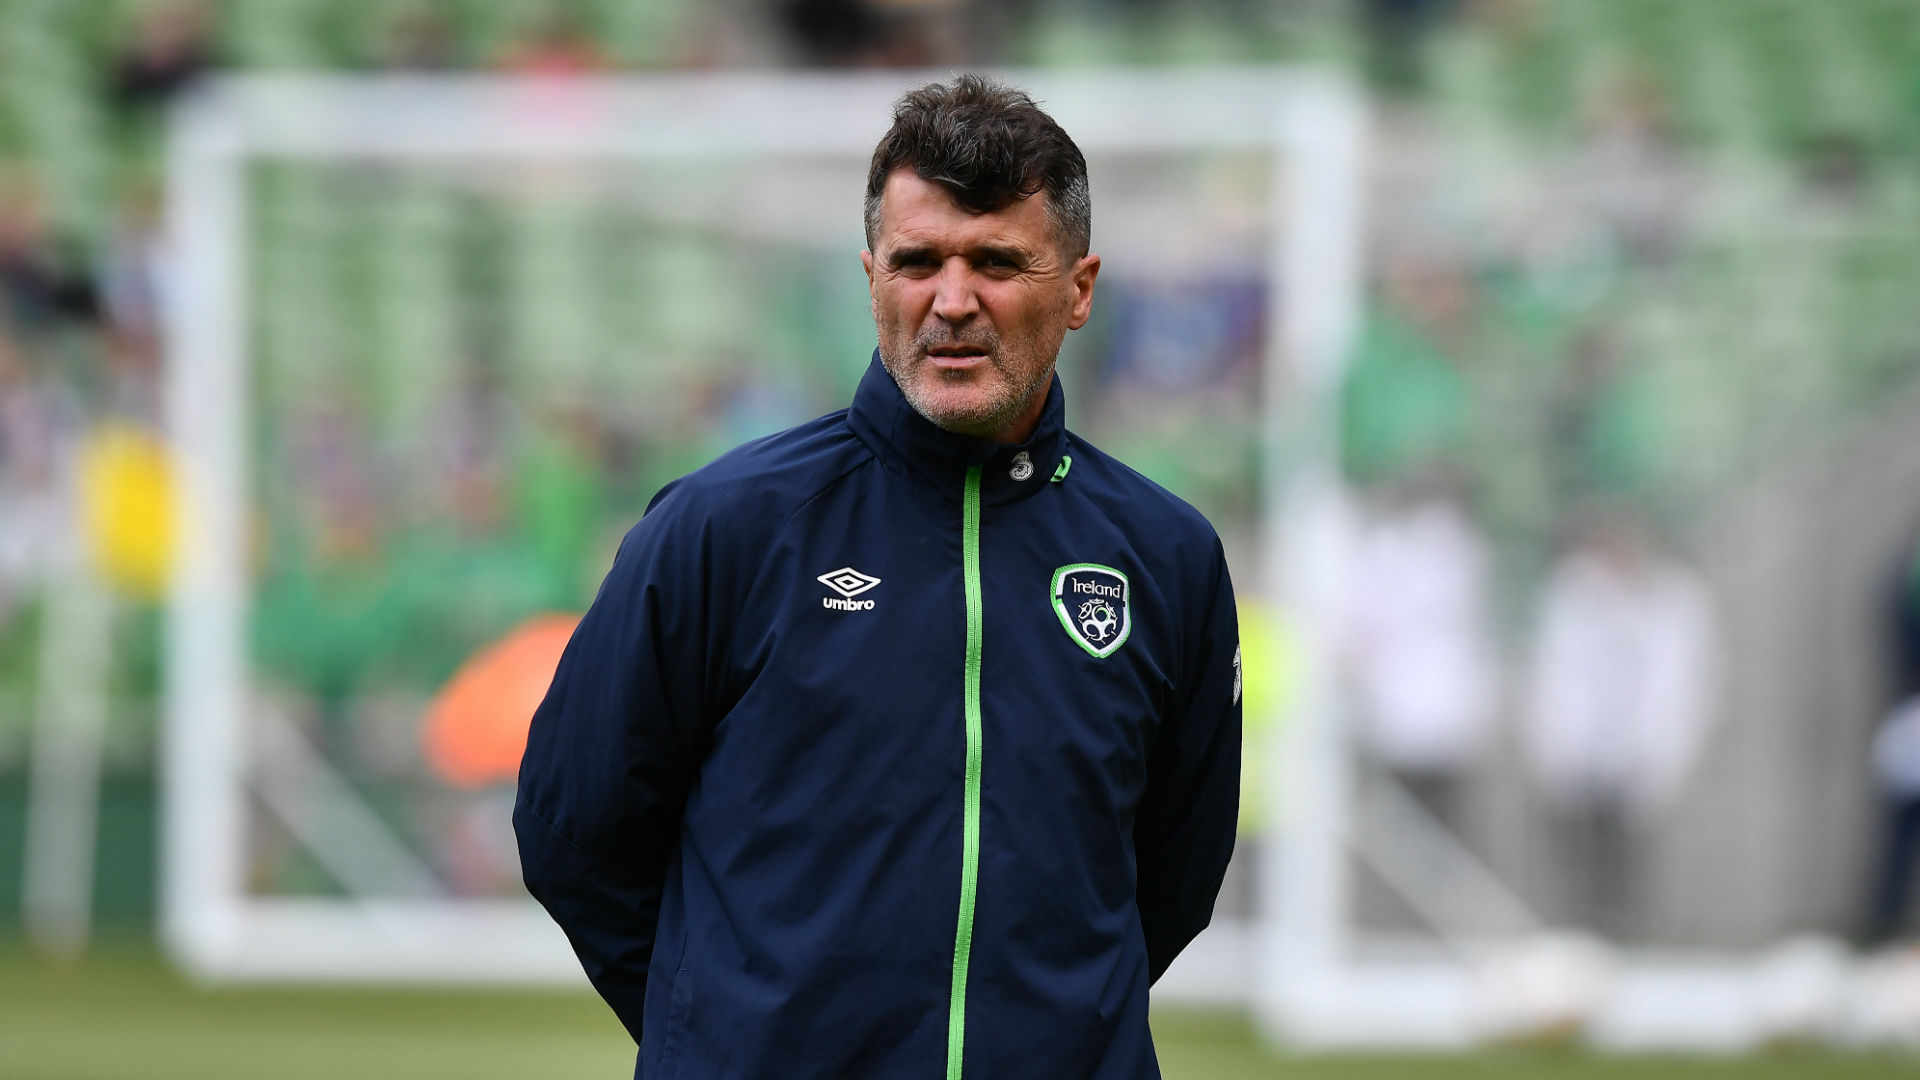 Play chess if you don't want to get hurt, says Keane